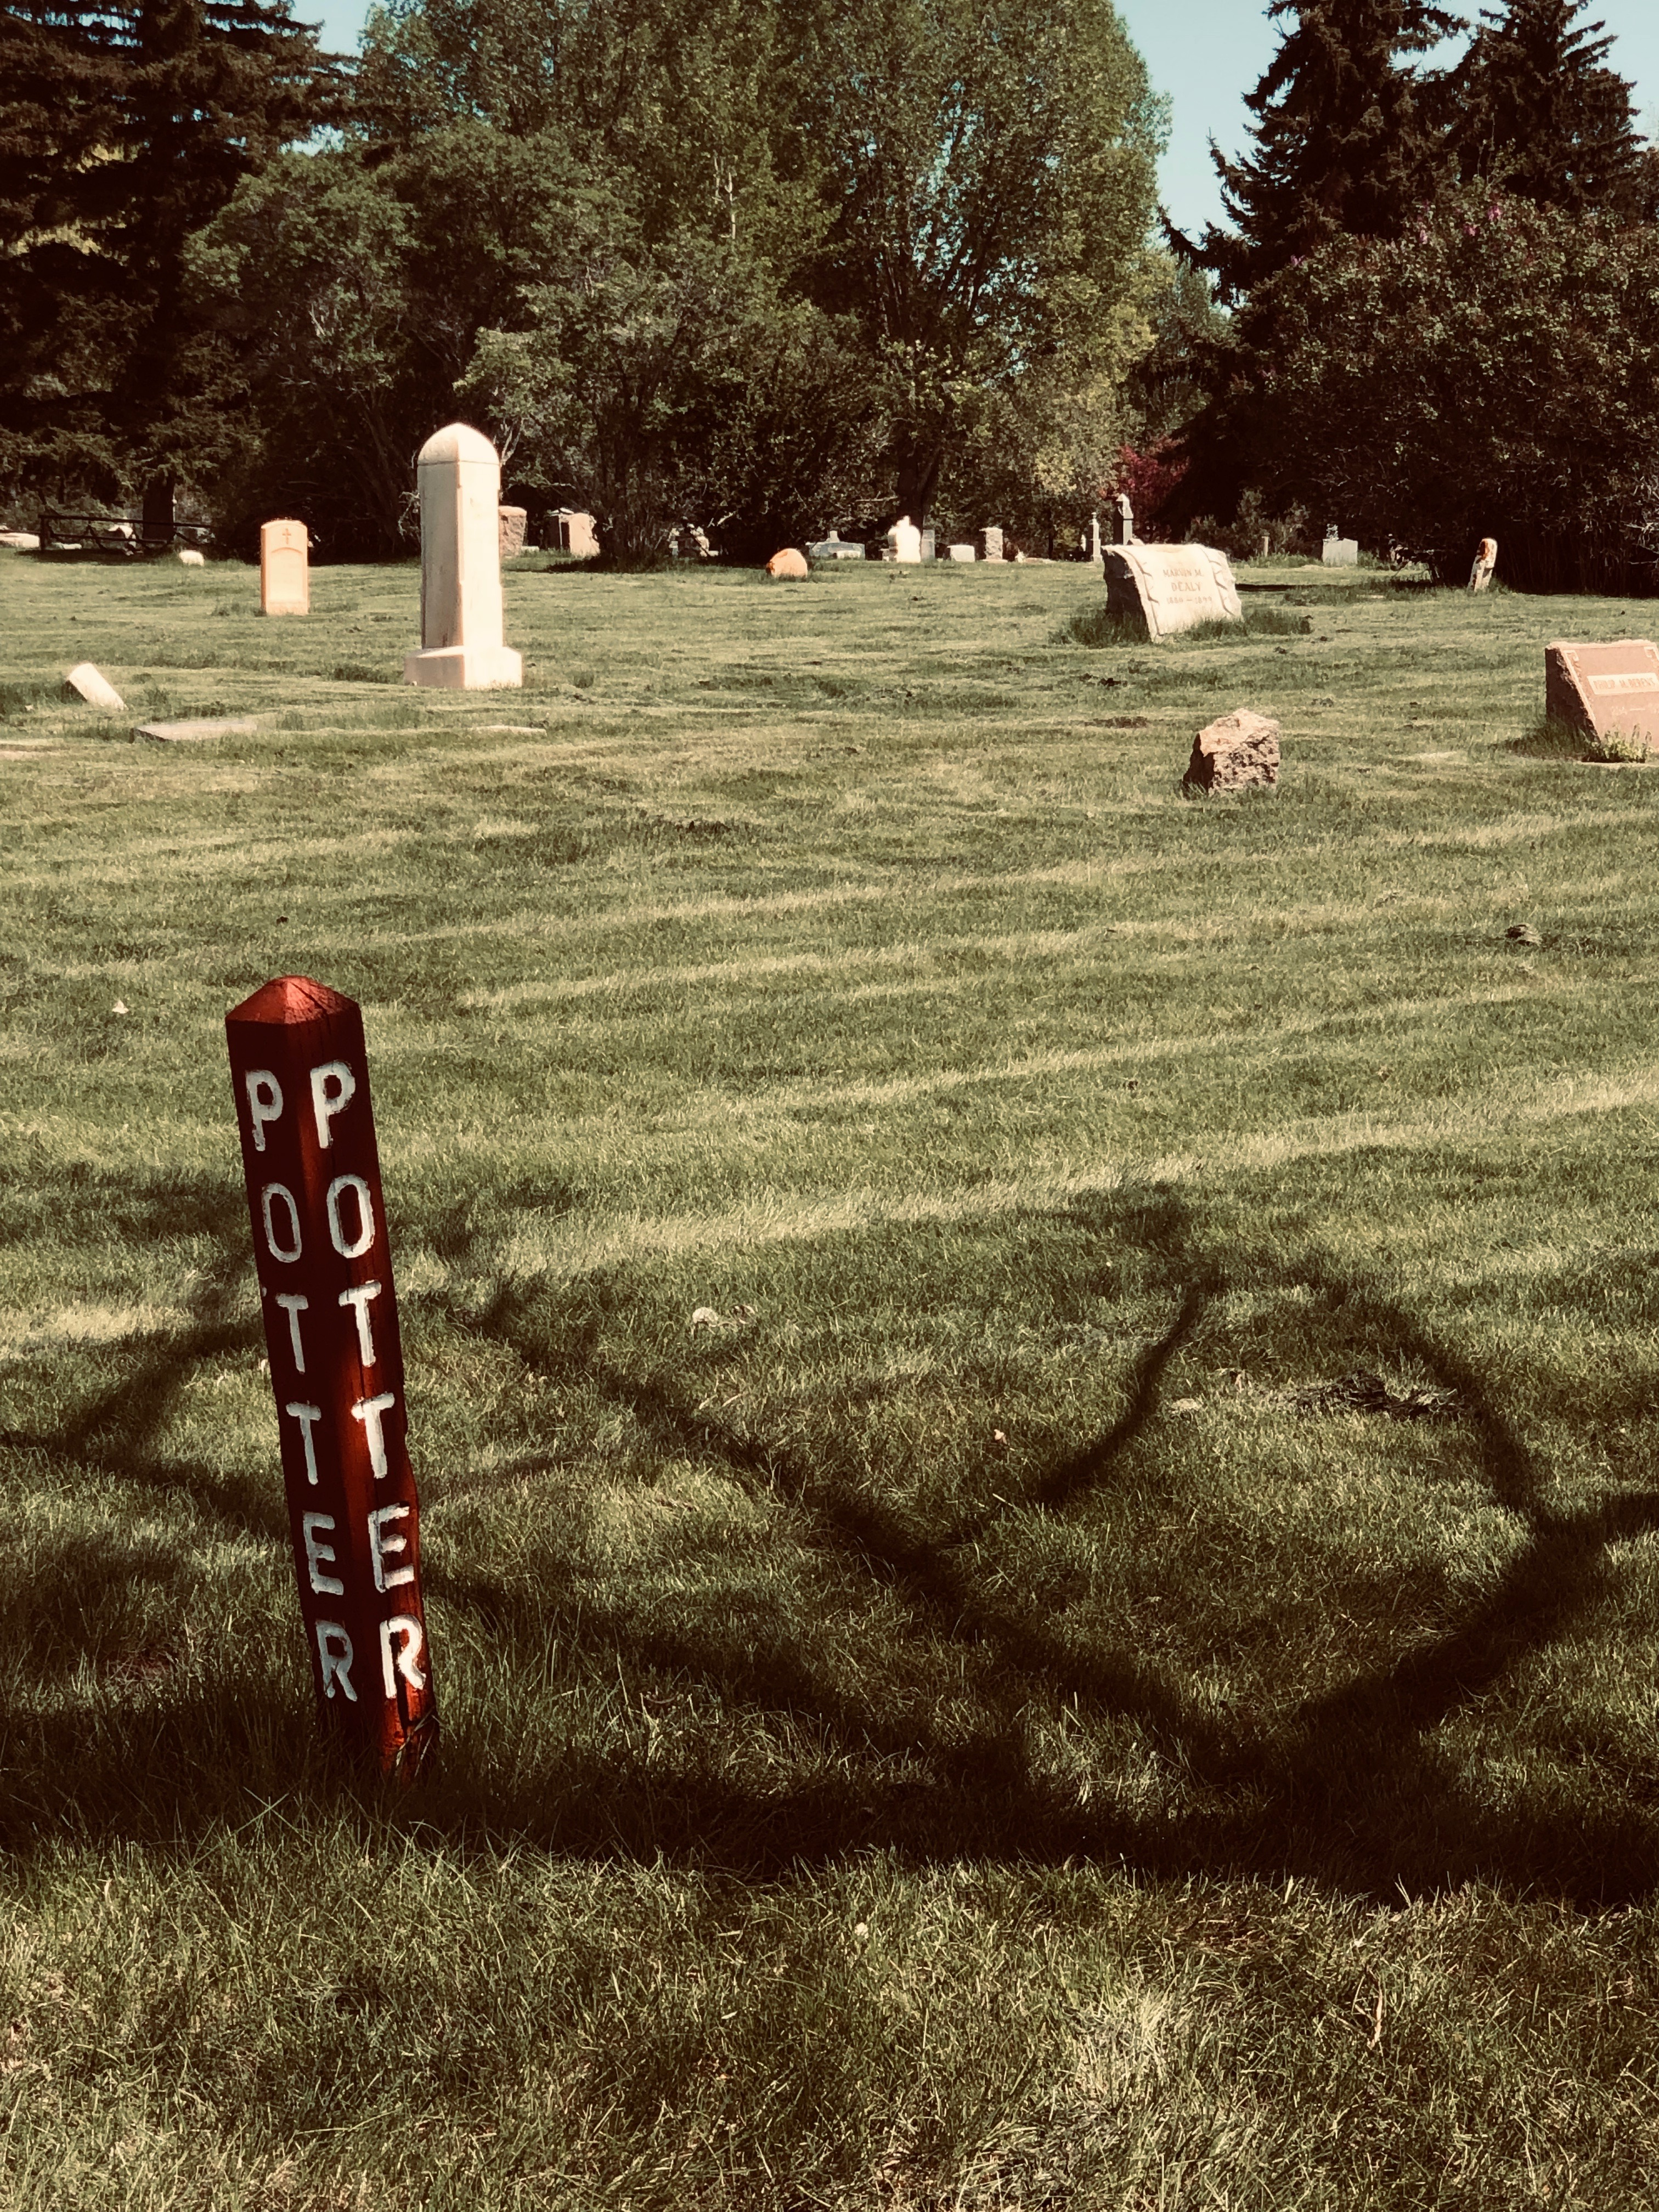 Joe Martin Gravesite in Potter's Field, Greenhill Cemetery, Laramie, Wyoming